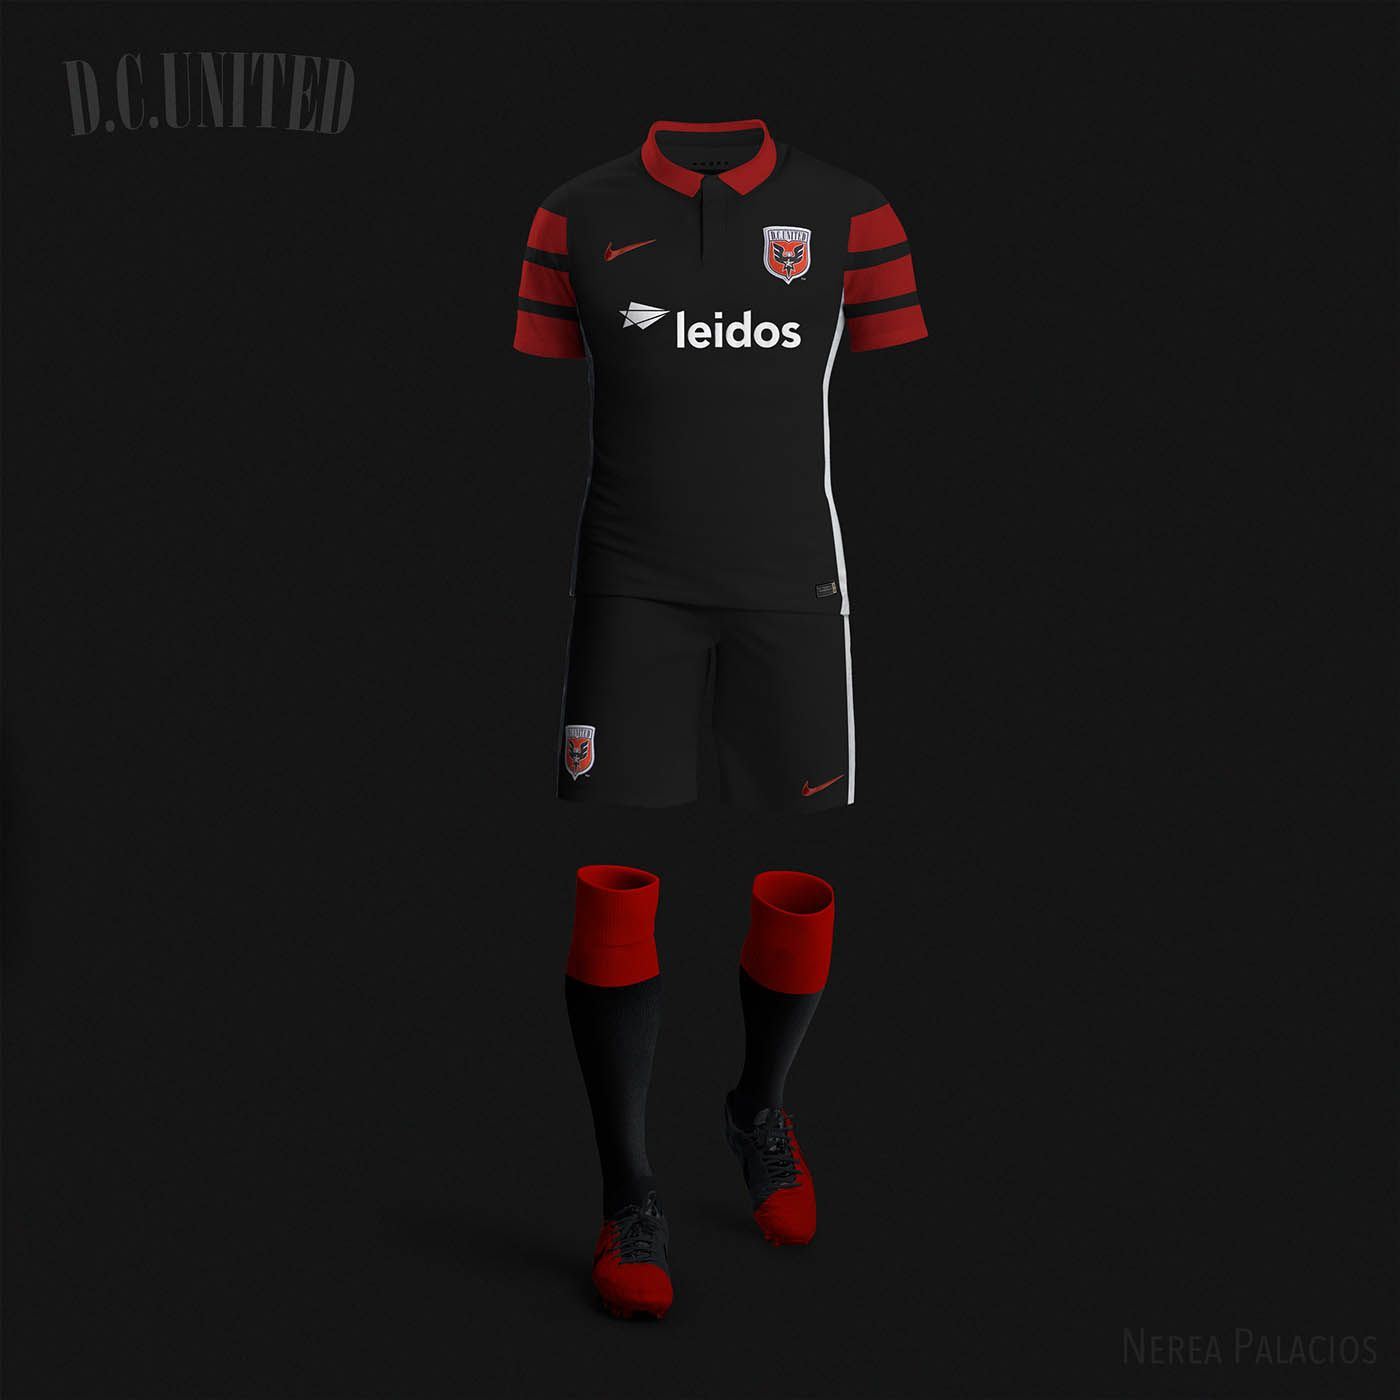 adf68cfbf Nike MLS Concept Kits by Nerea Palacios | DC United | The Pitch ...